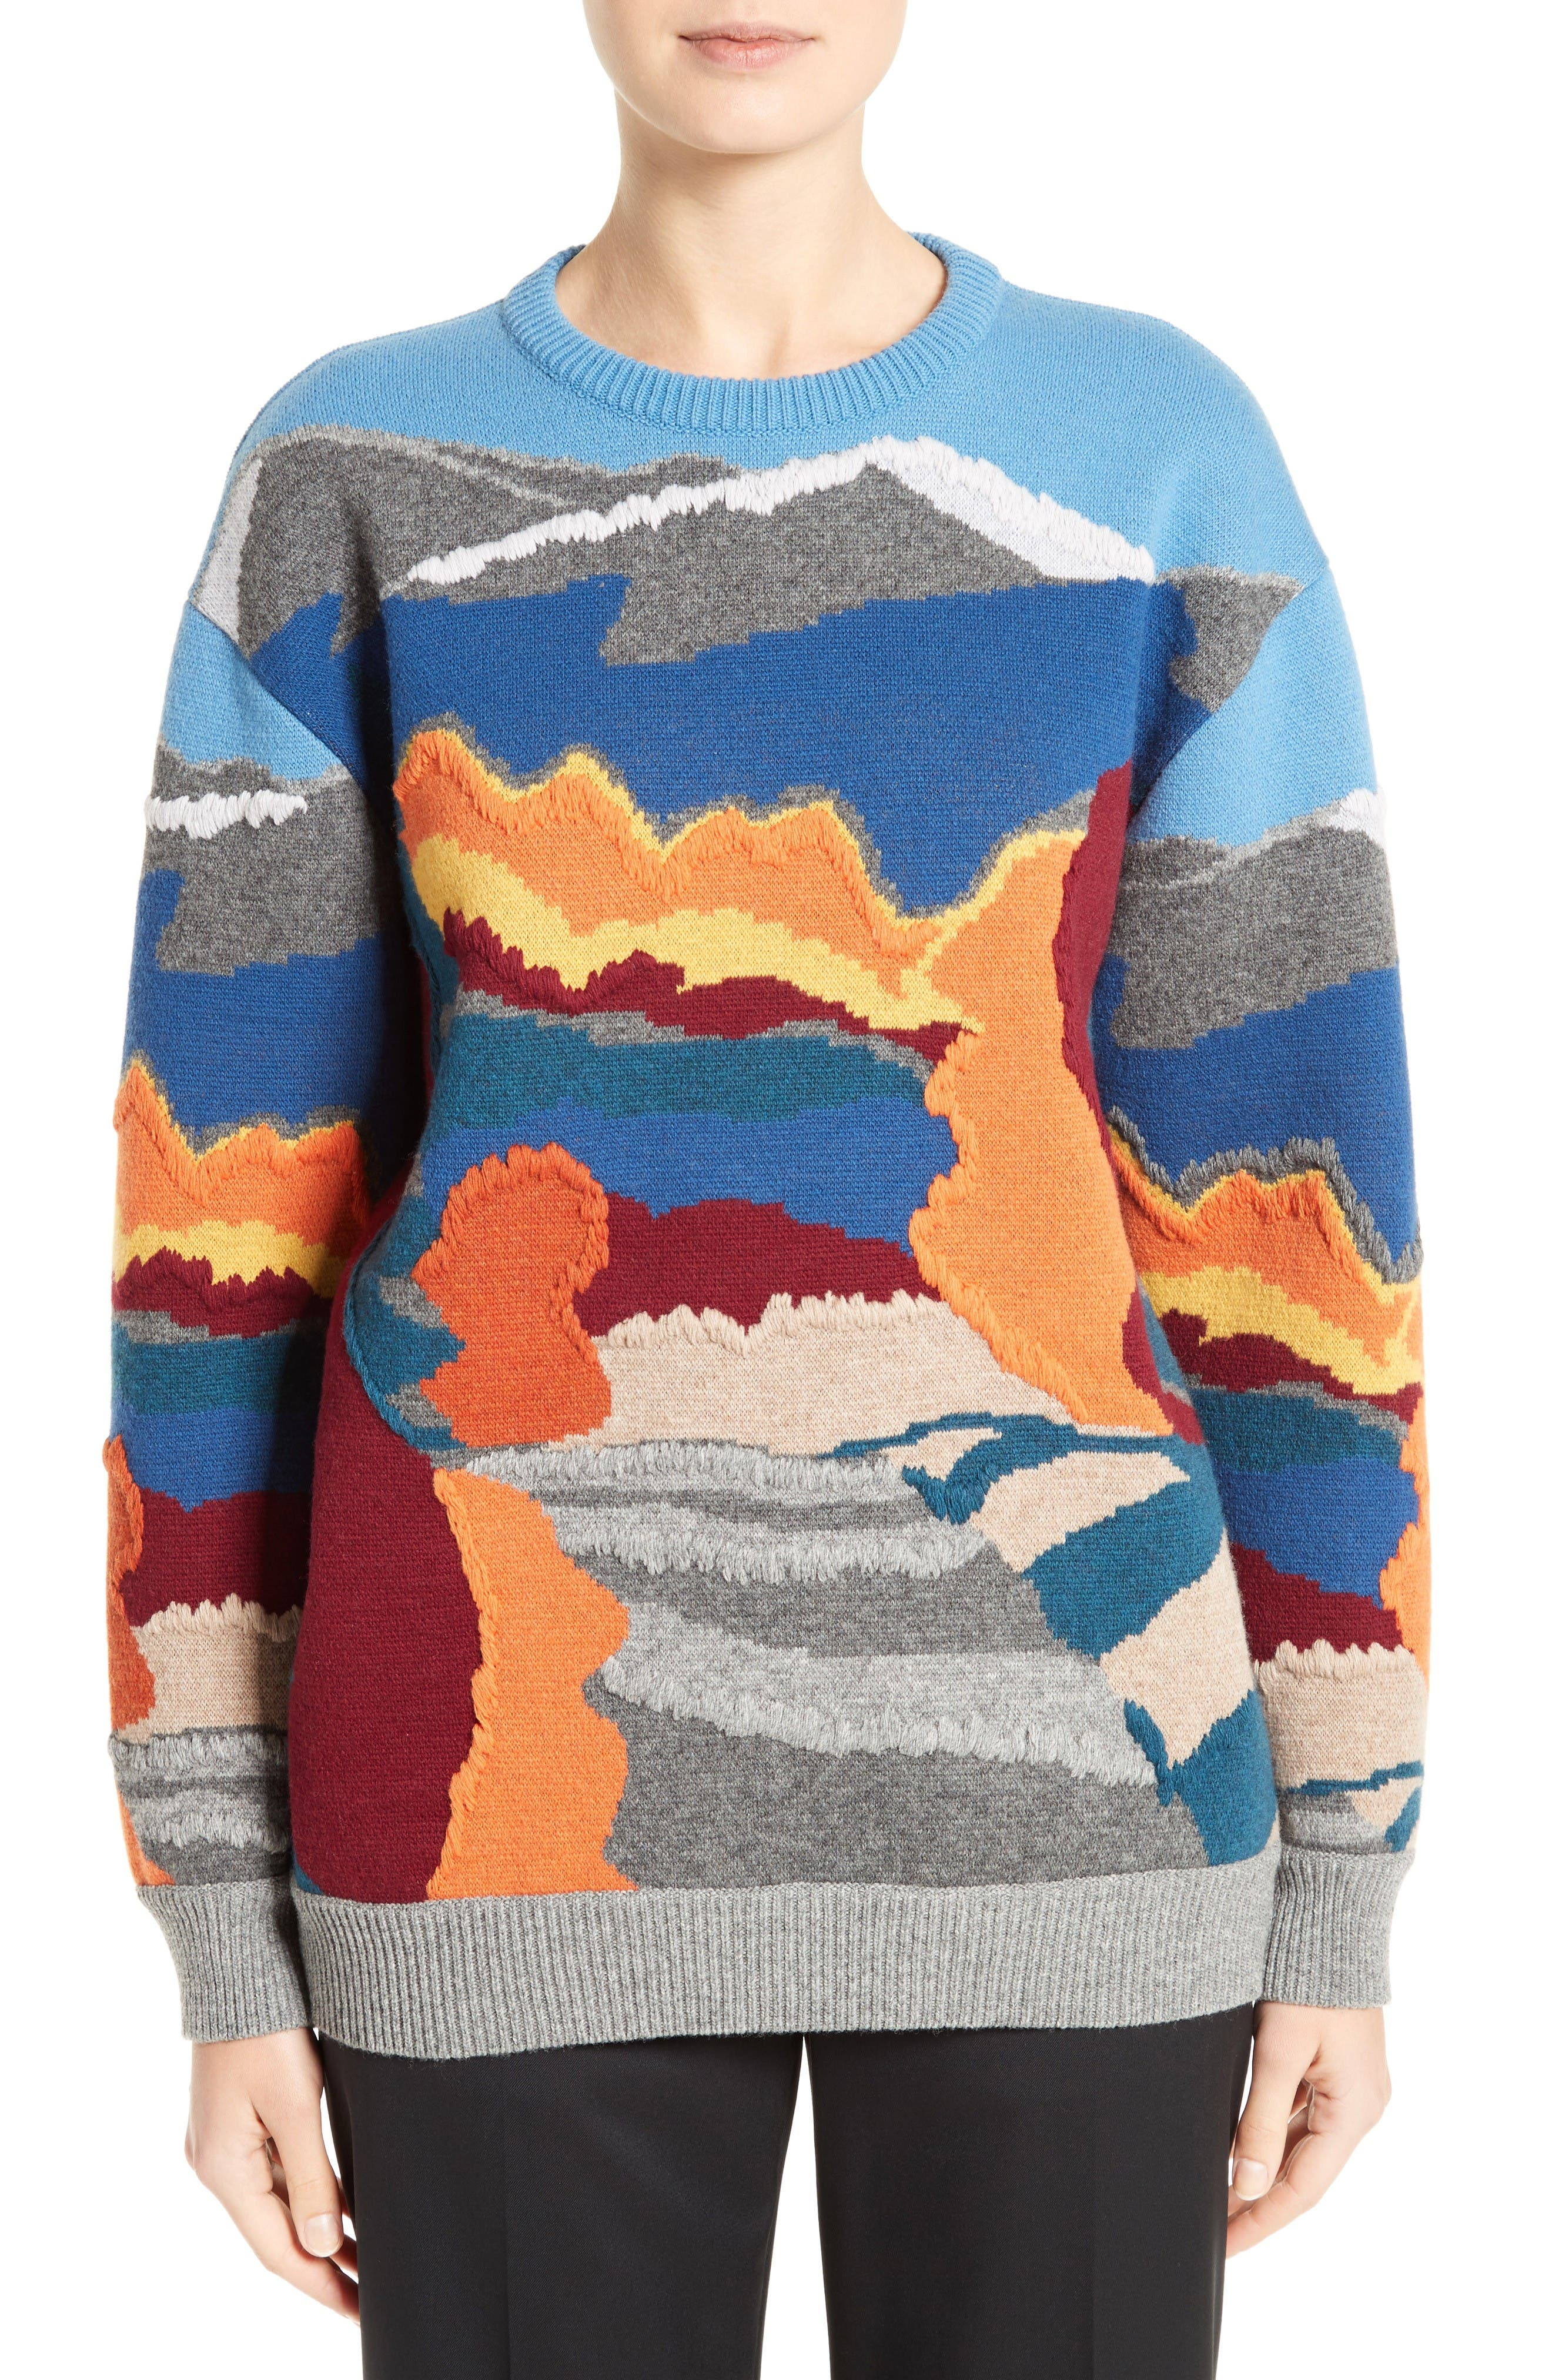 Alternate Image 1 Selected - Stella McCartney 'Landscape' Intarsia Knit Wool Sweater